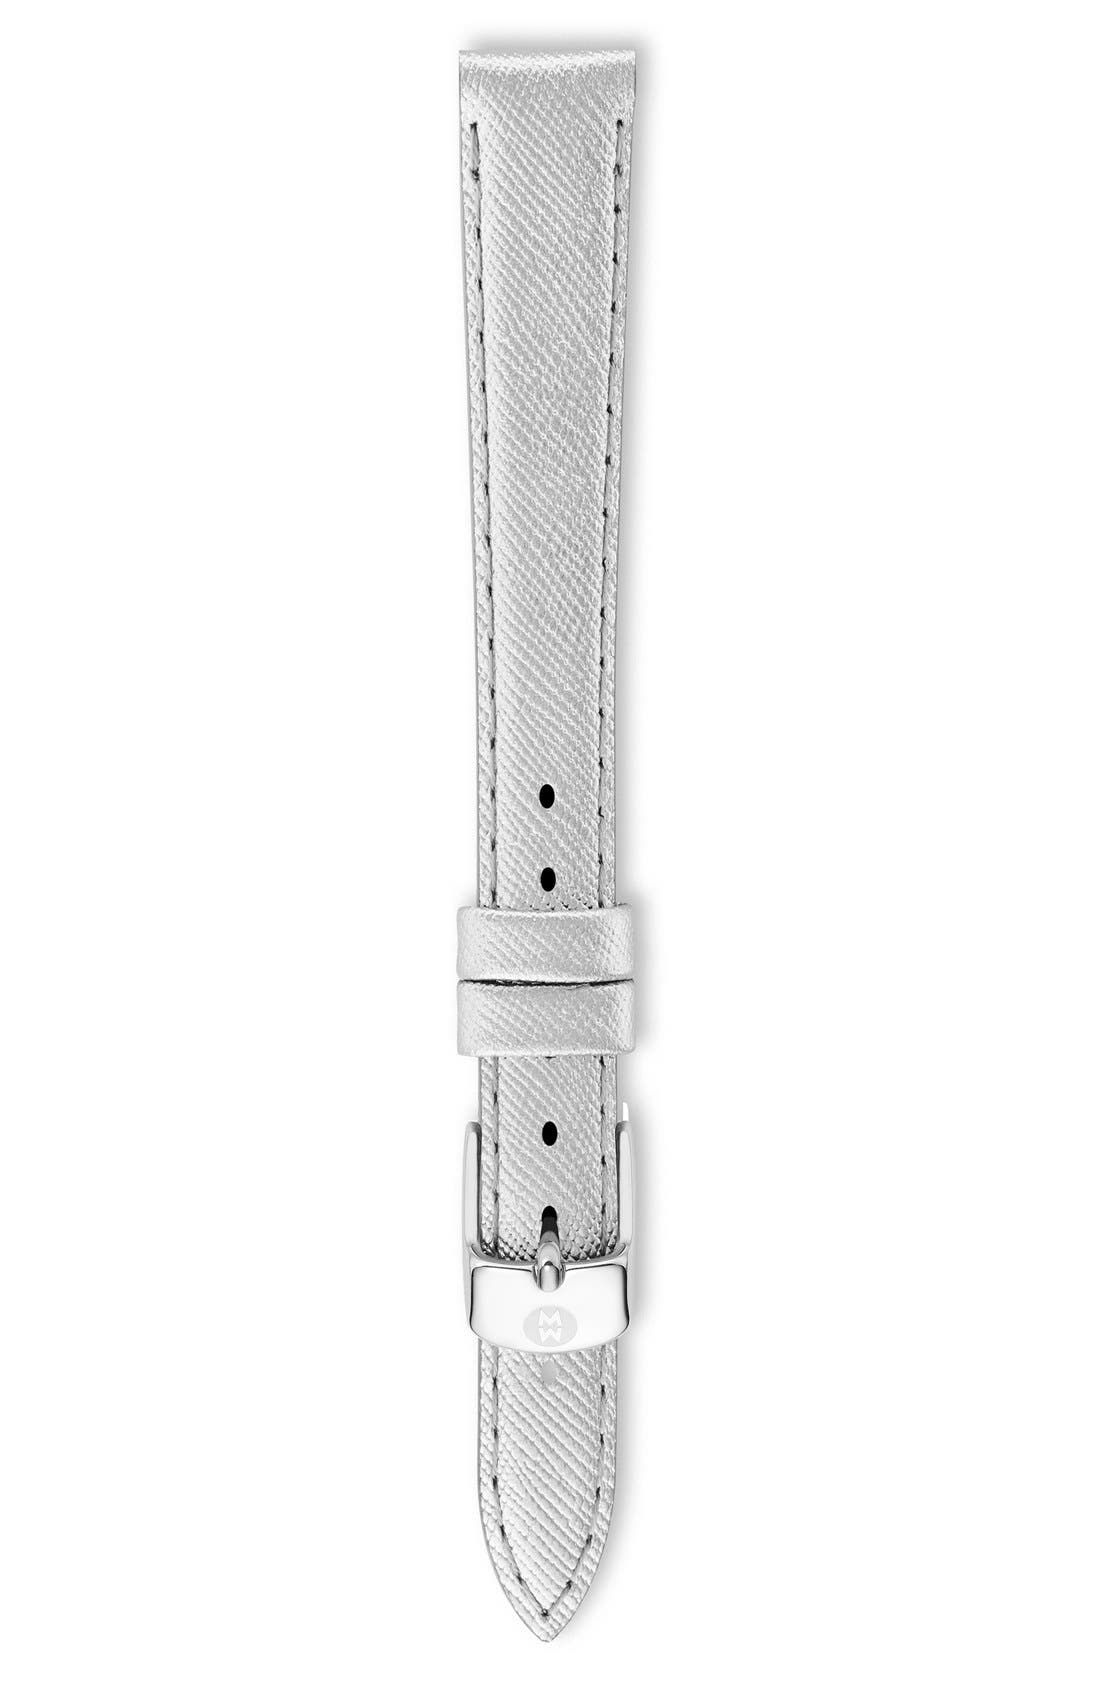 MICHELE 12mm Metallic Leather Watch Strap